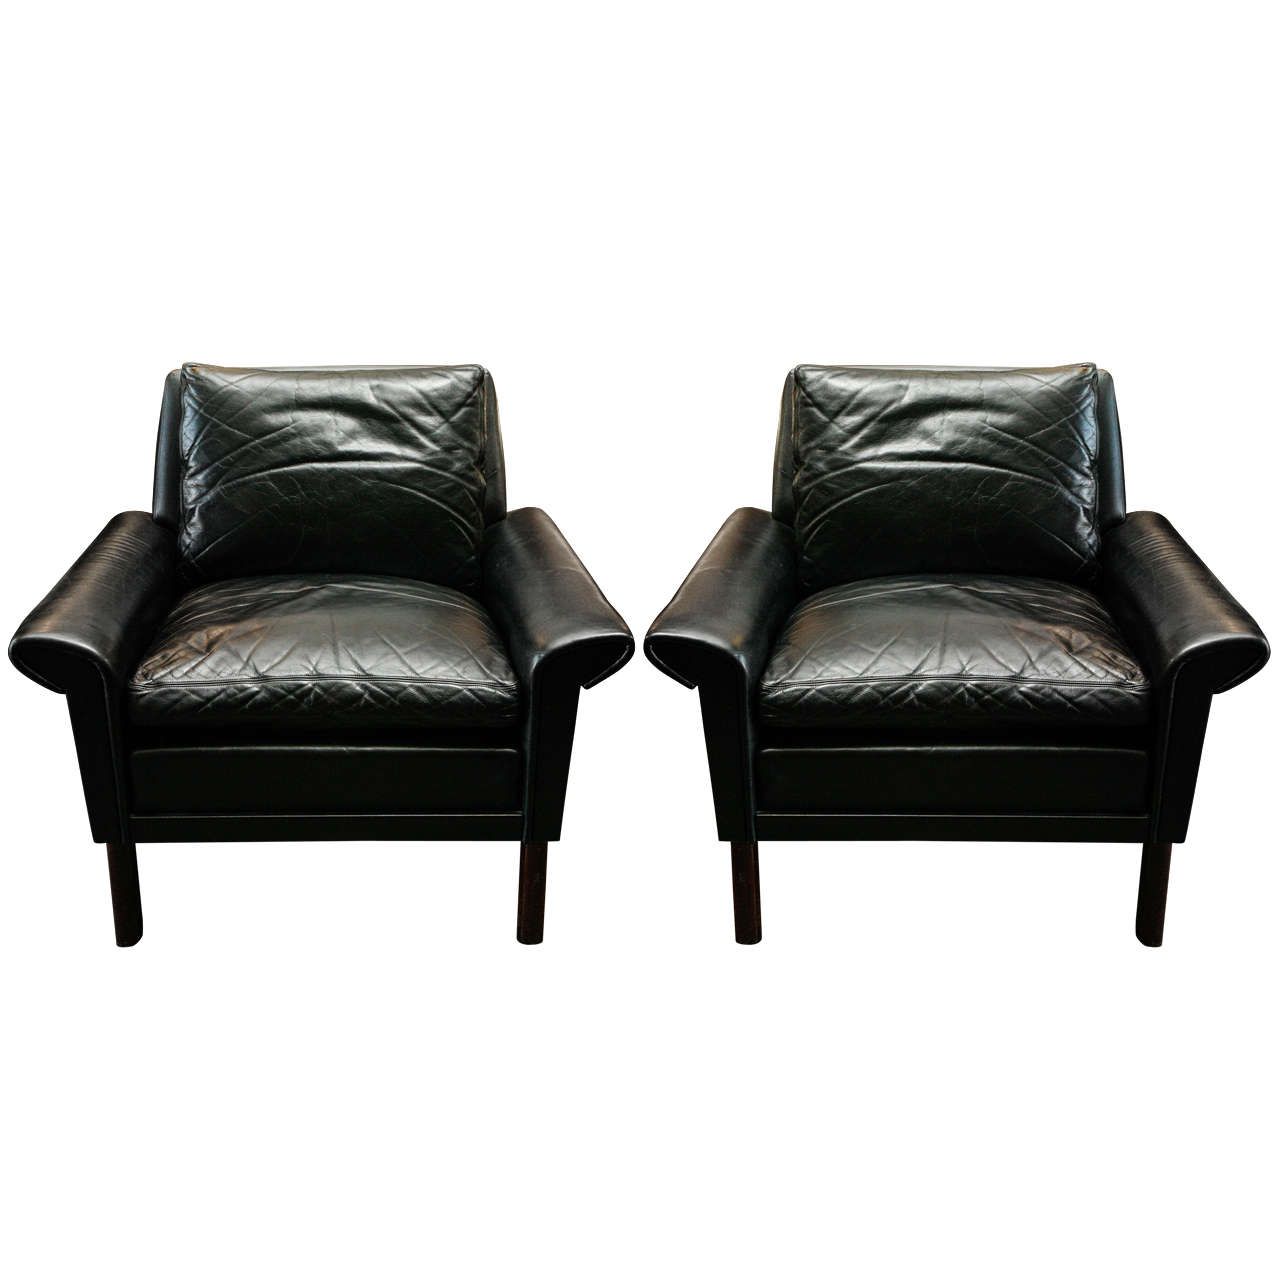 Mid century modern danish leather arm chairs for Mid century modern leather chairs